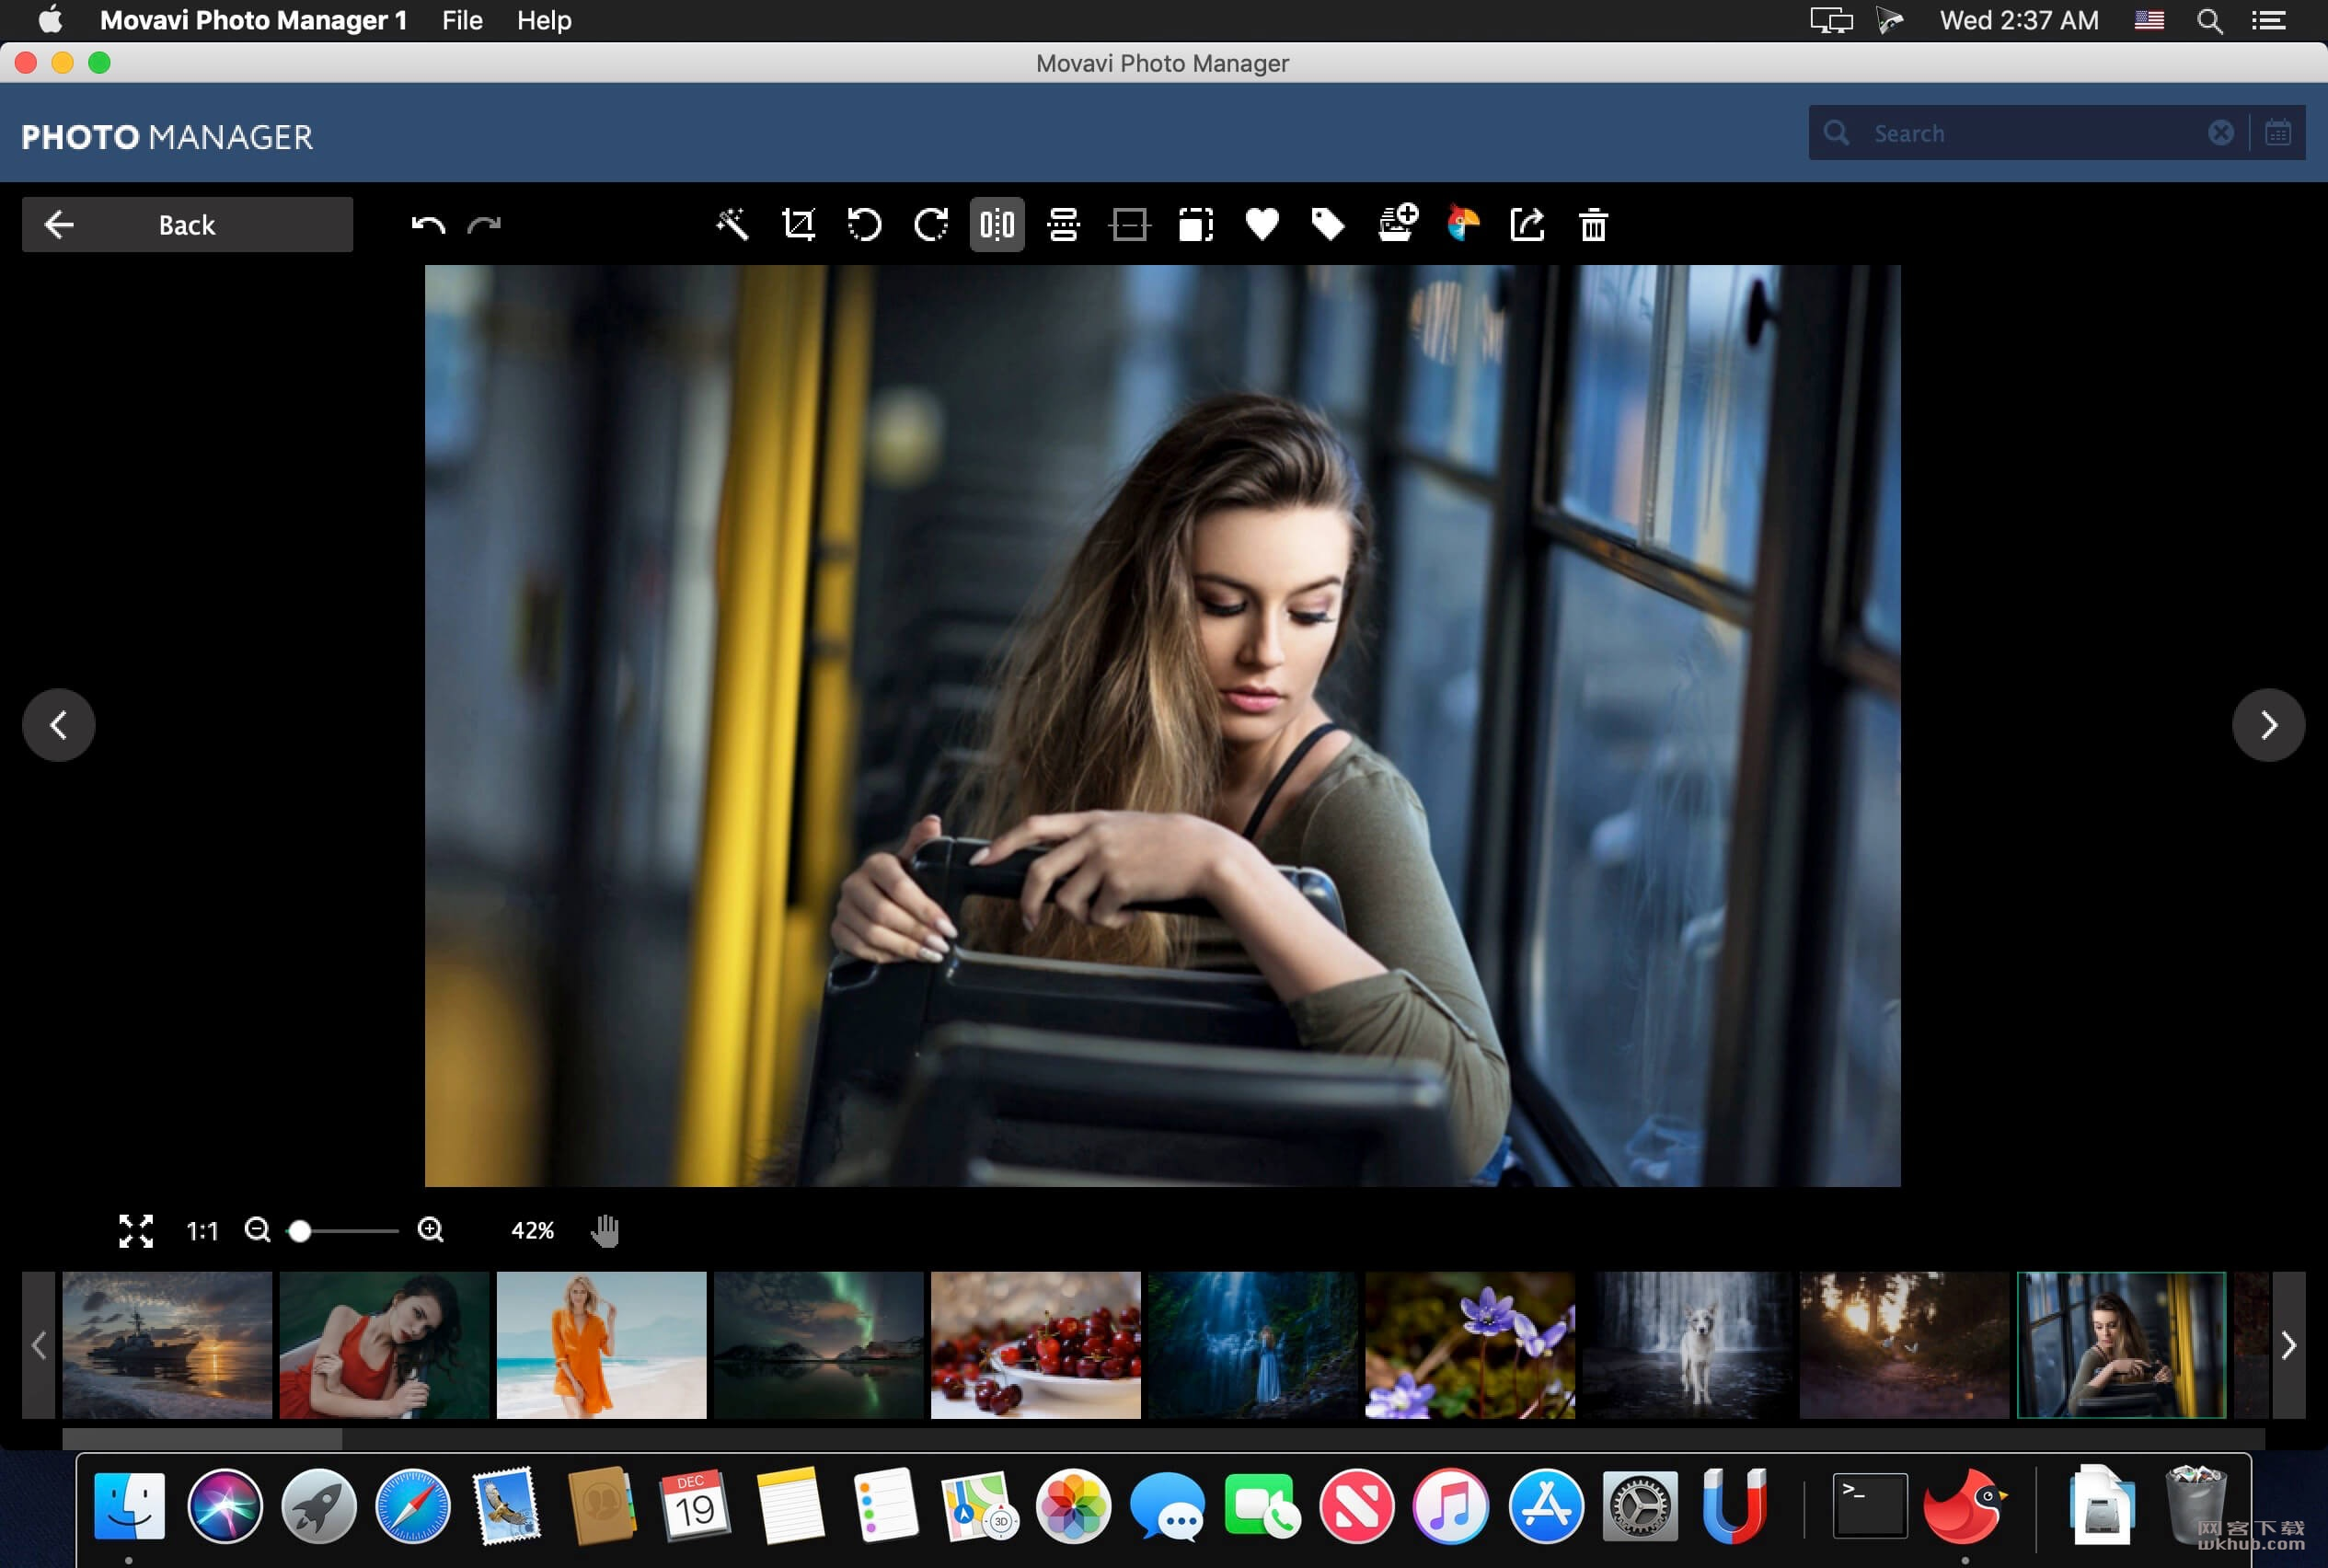 Movavi Photo Manager 1.2.1 照片管理应用